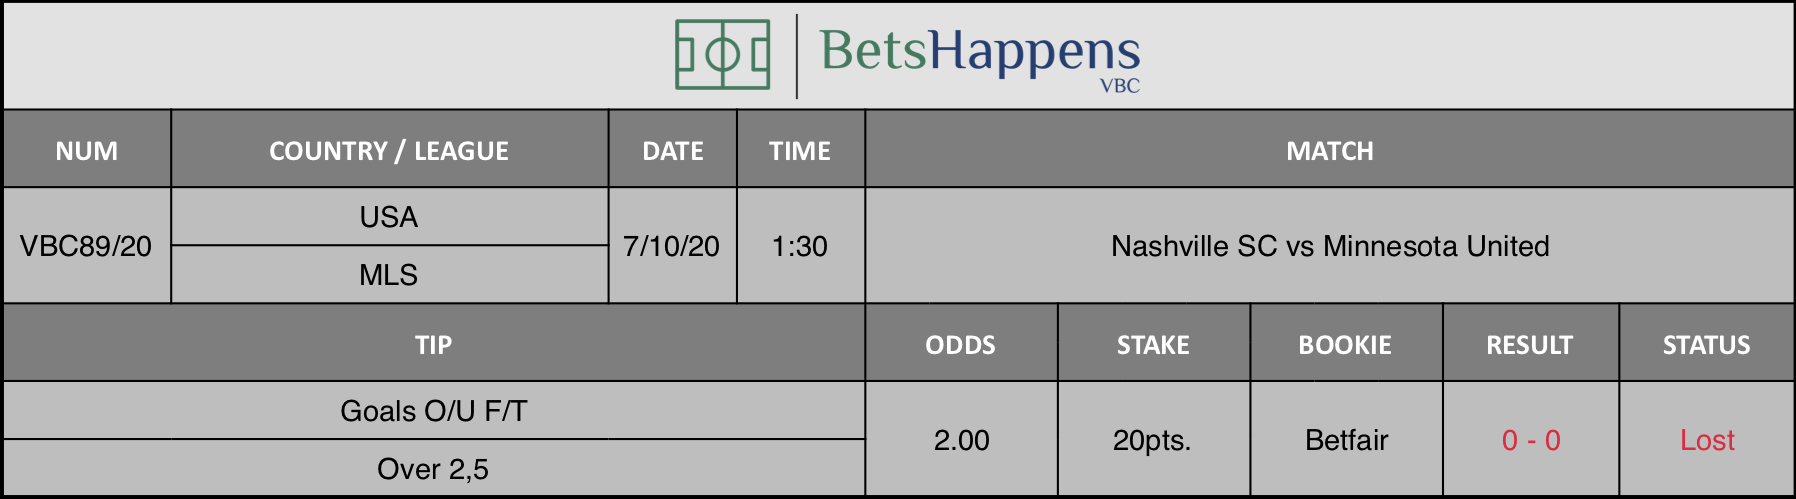 Results of our tip for the Nashville SC vs Minnesota United game where Goals O / U F / T Over 2.5 is recommended.